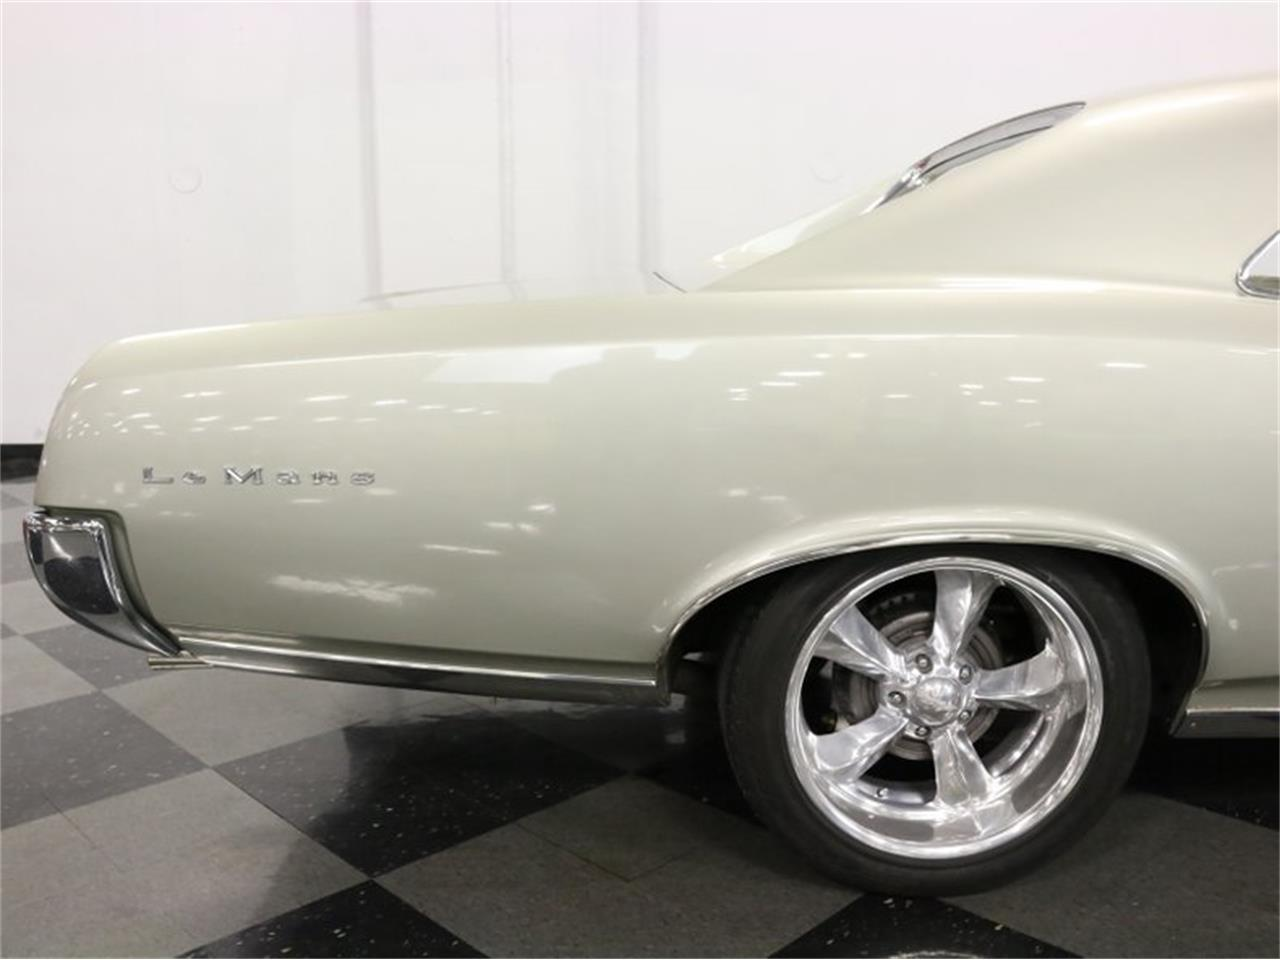 Large Picture of 1967 Pontiac LeMans located in Ft Worth Texas Offered by Streetside Classics - Dallas / Fort Worth - LSP2